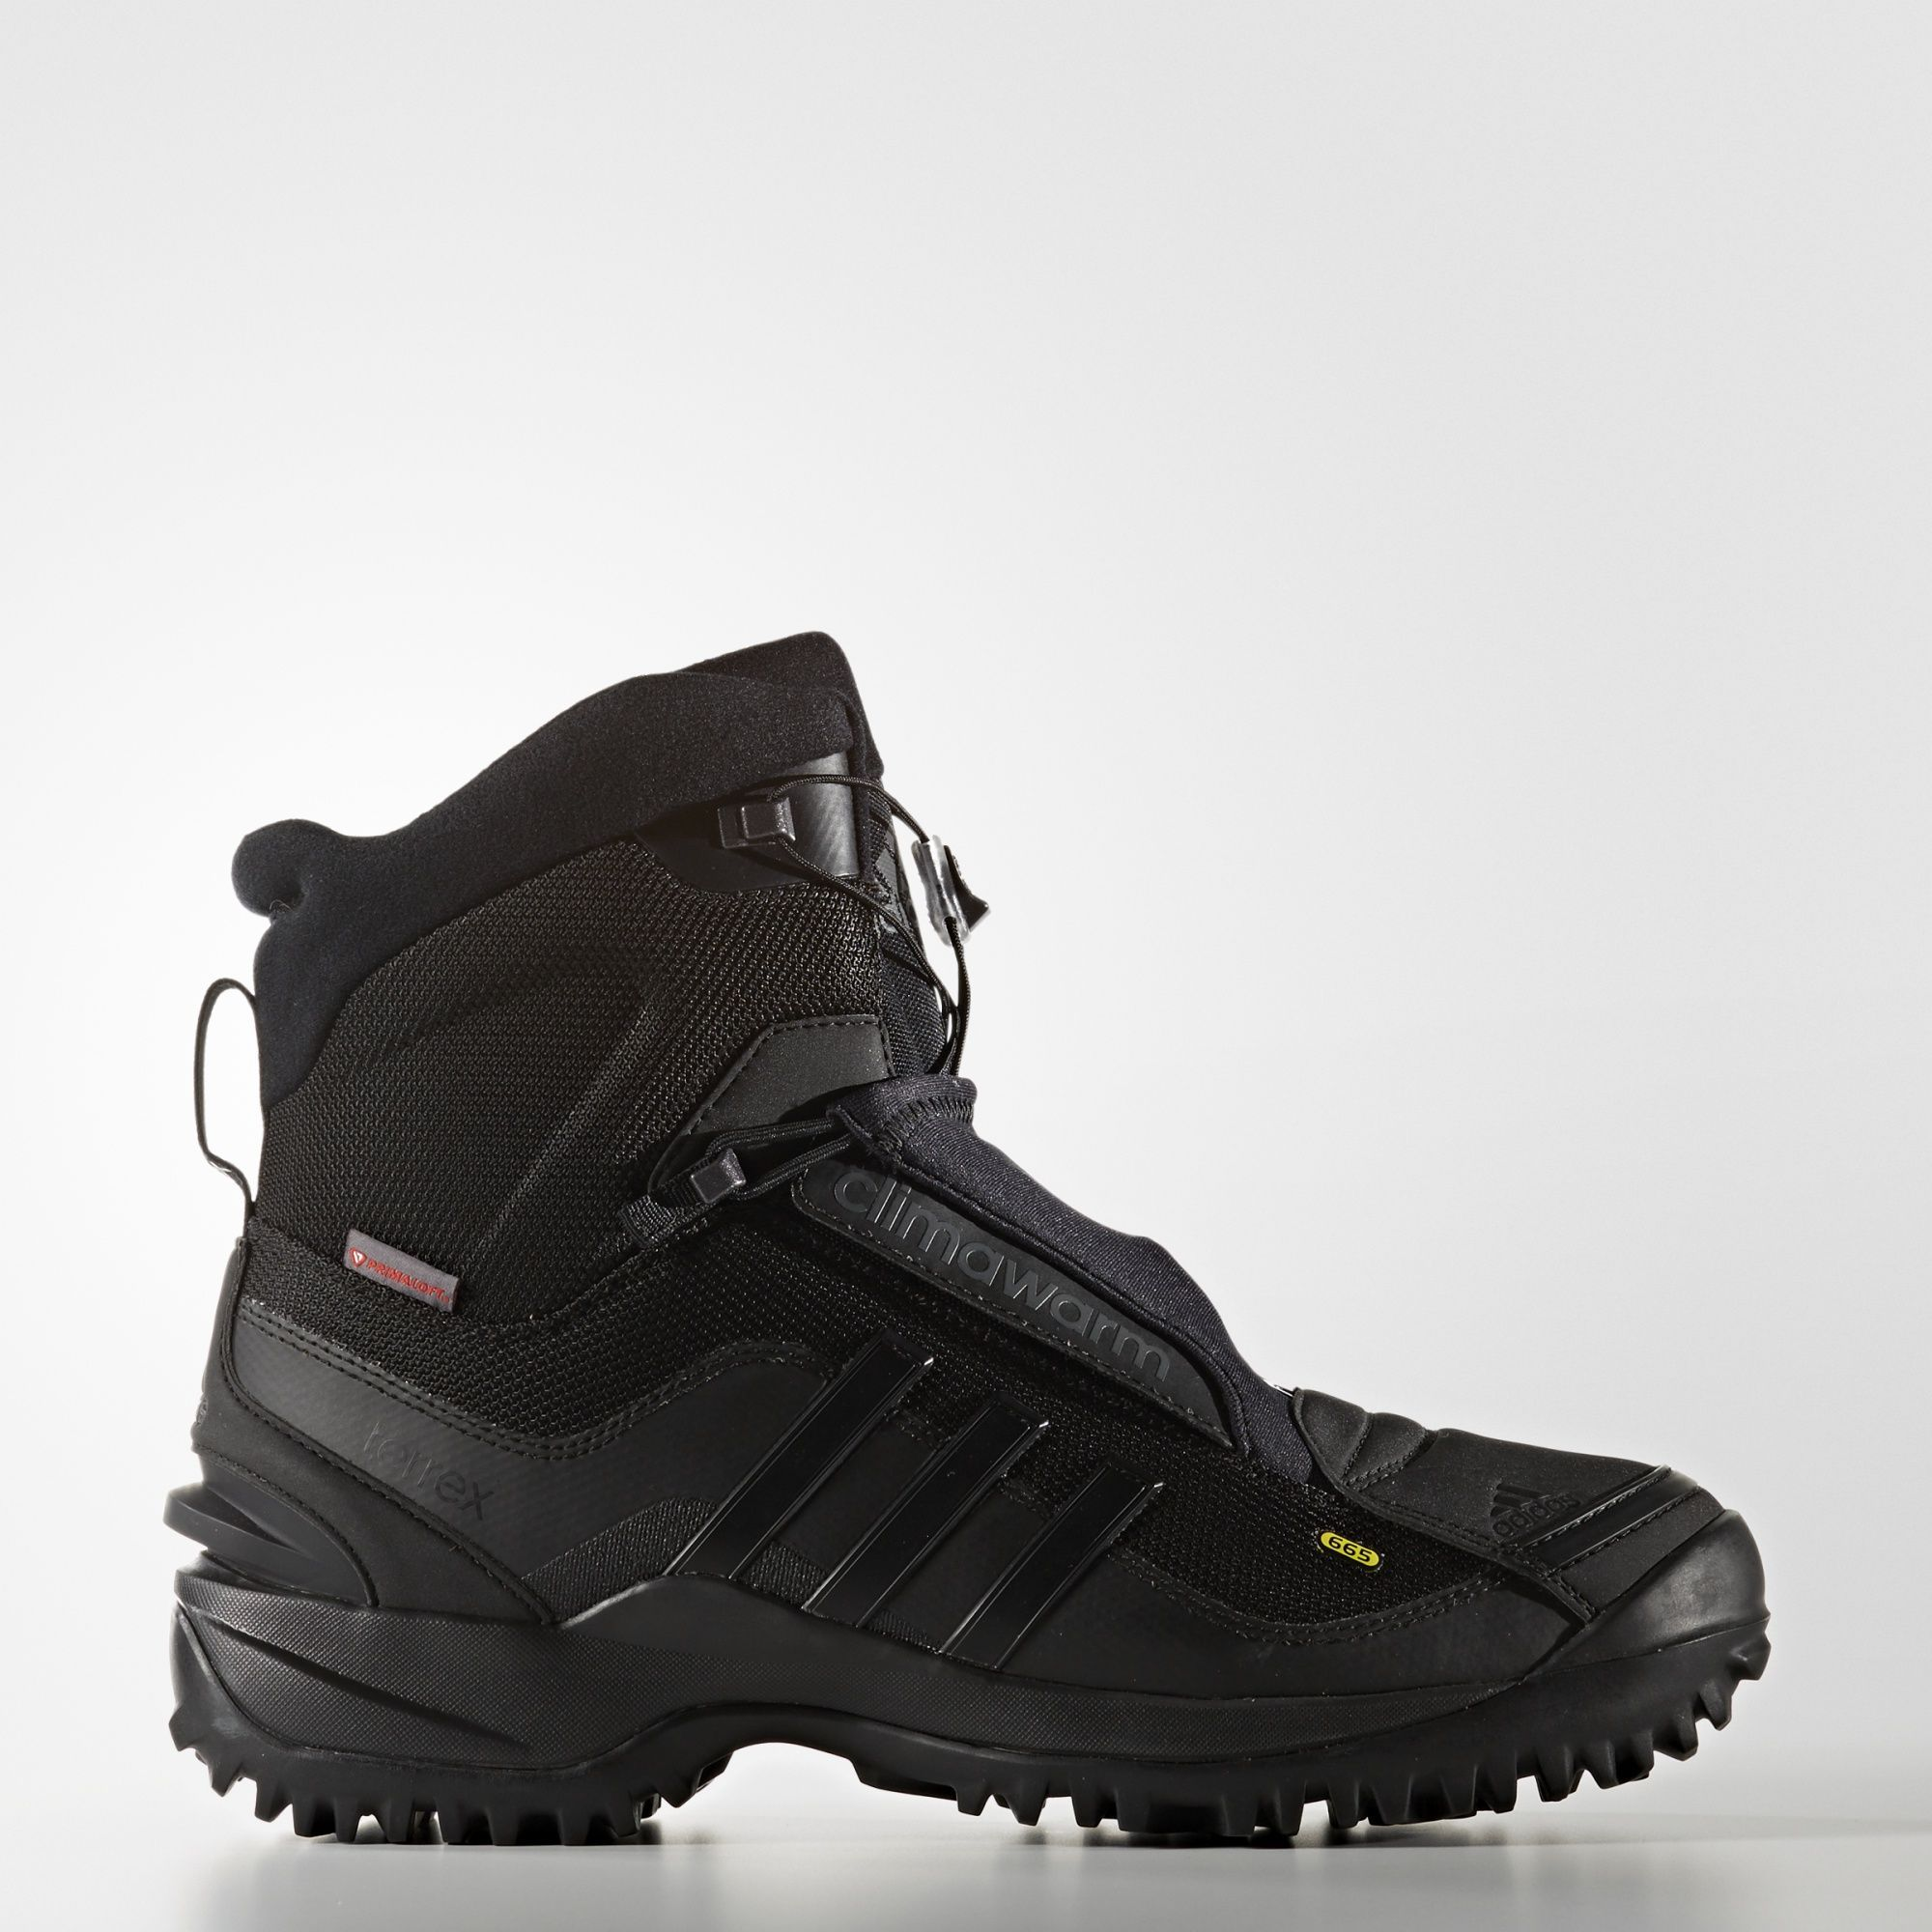 adidas Terrex Conrax CW CP Boots | Yes Please | New adidas